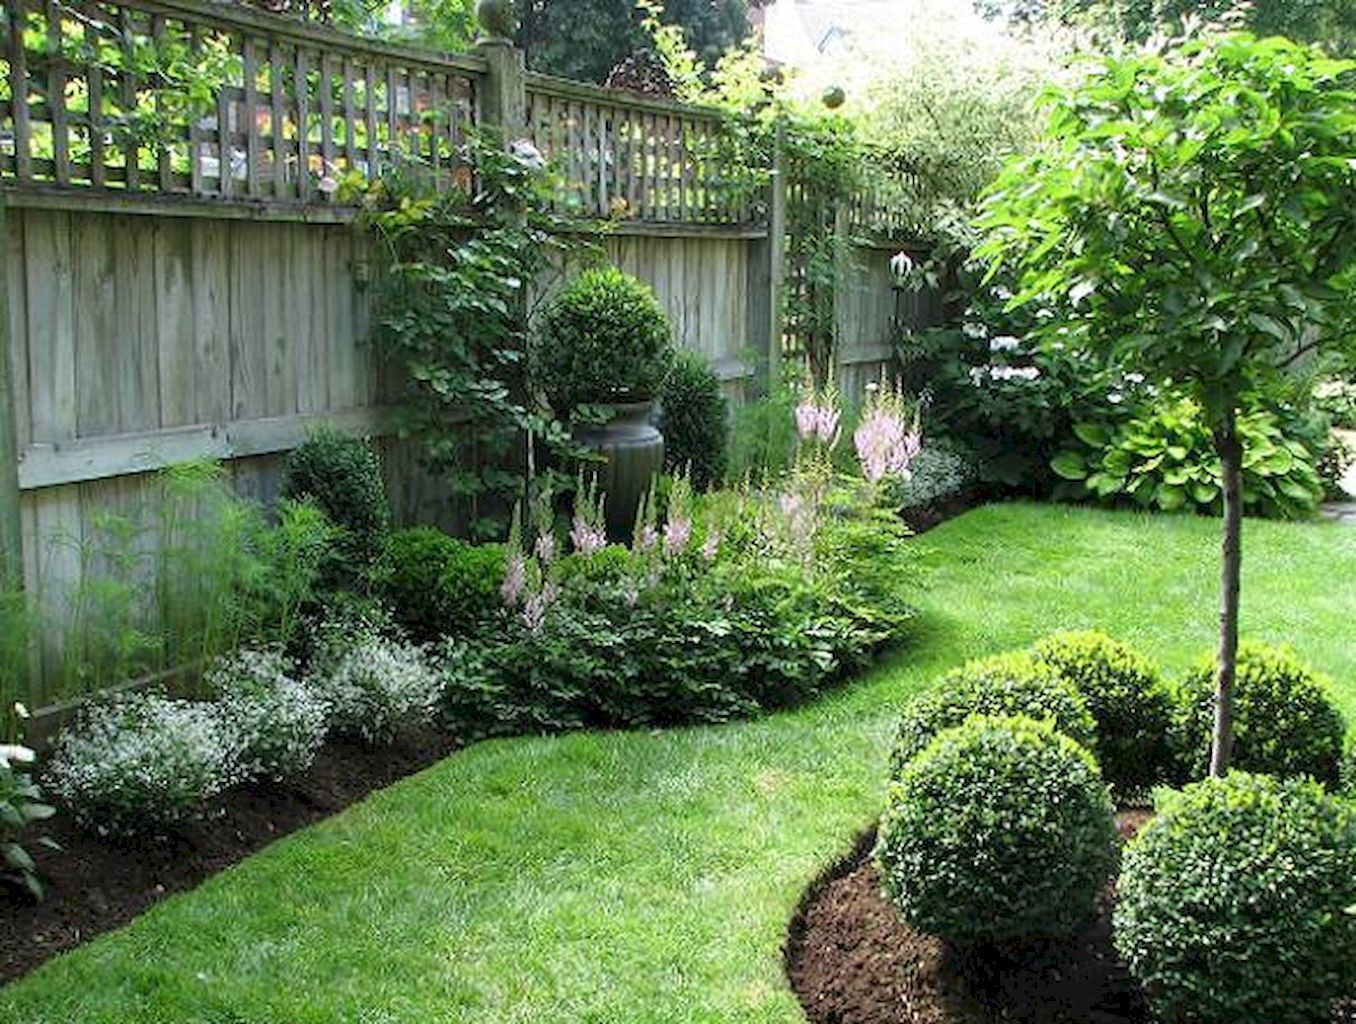 Pin Design Your Outdoor Living On Landscape Design Pinterest for Small Backyard Landscaping Ideas For Privacy